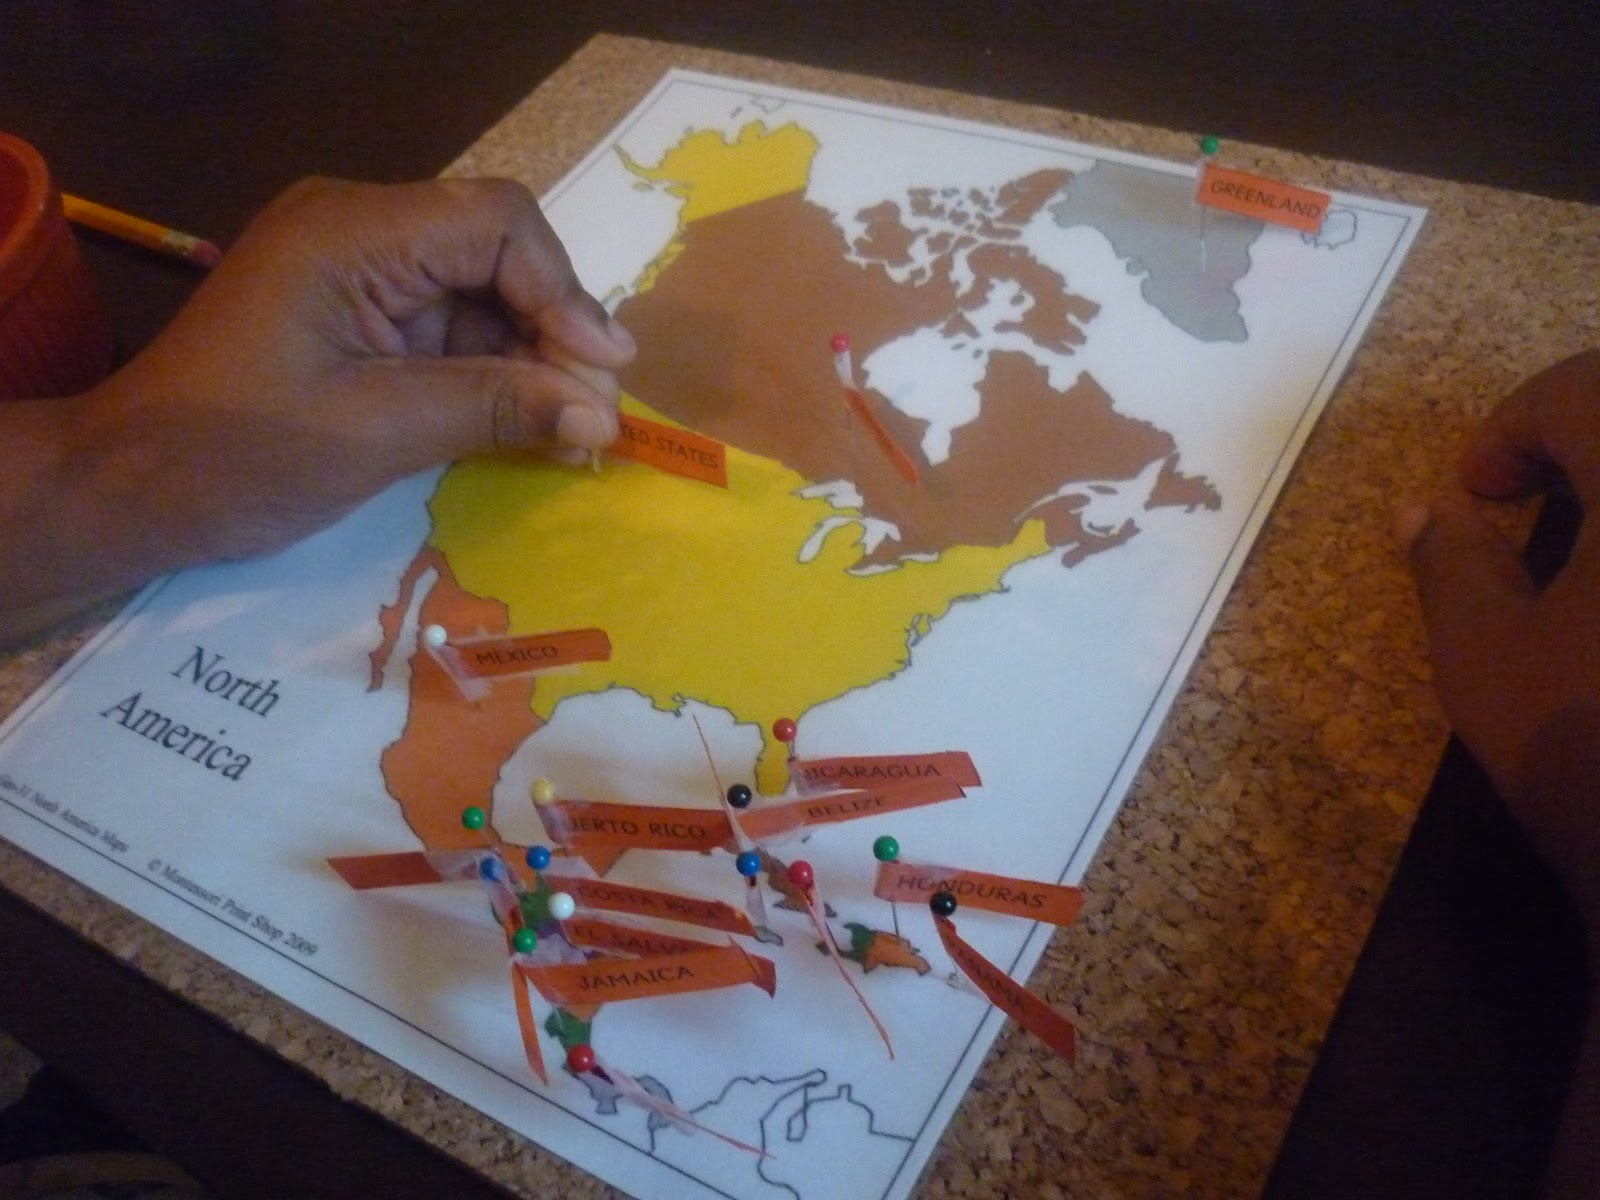 North America Pin Map Activity (Photo from We Don't Need No Education)